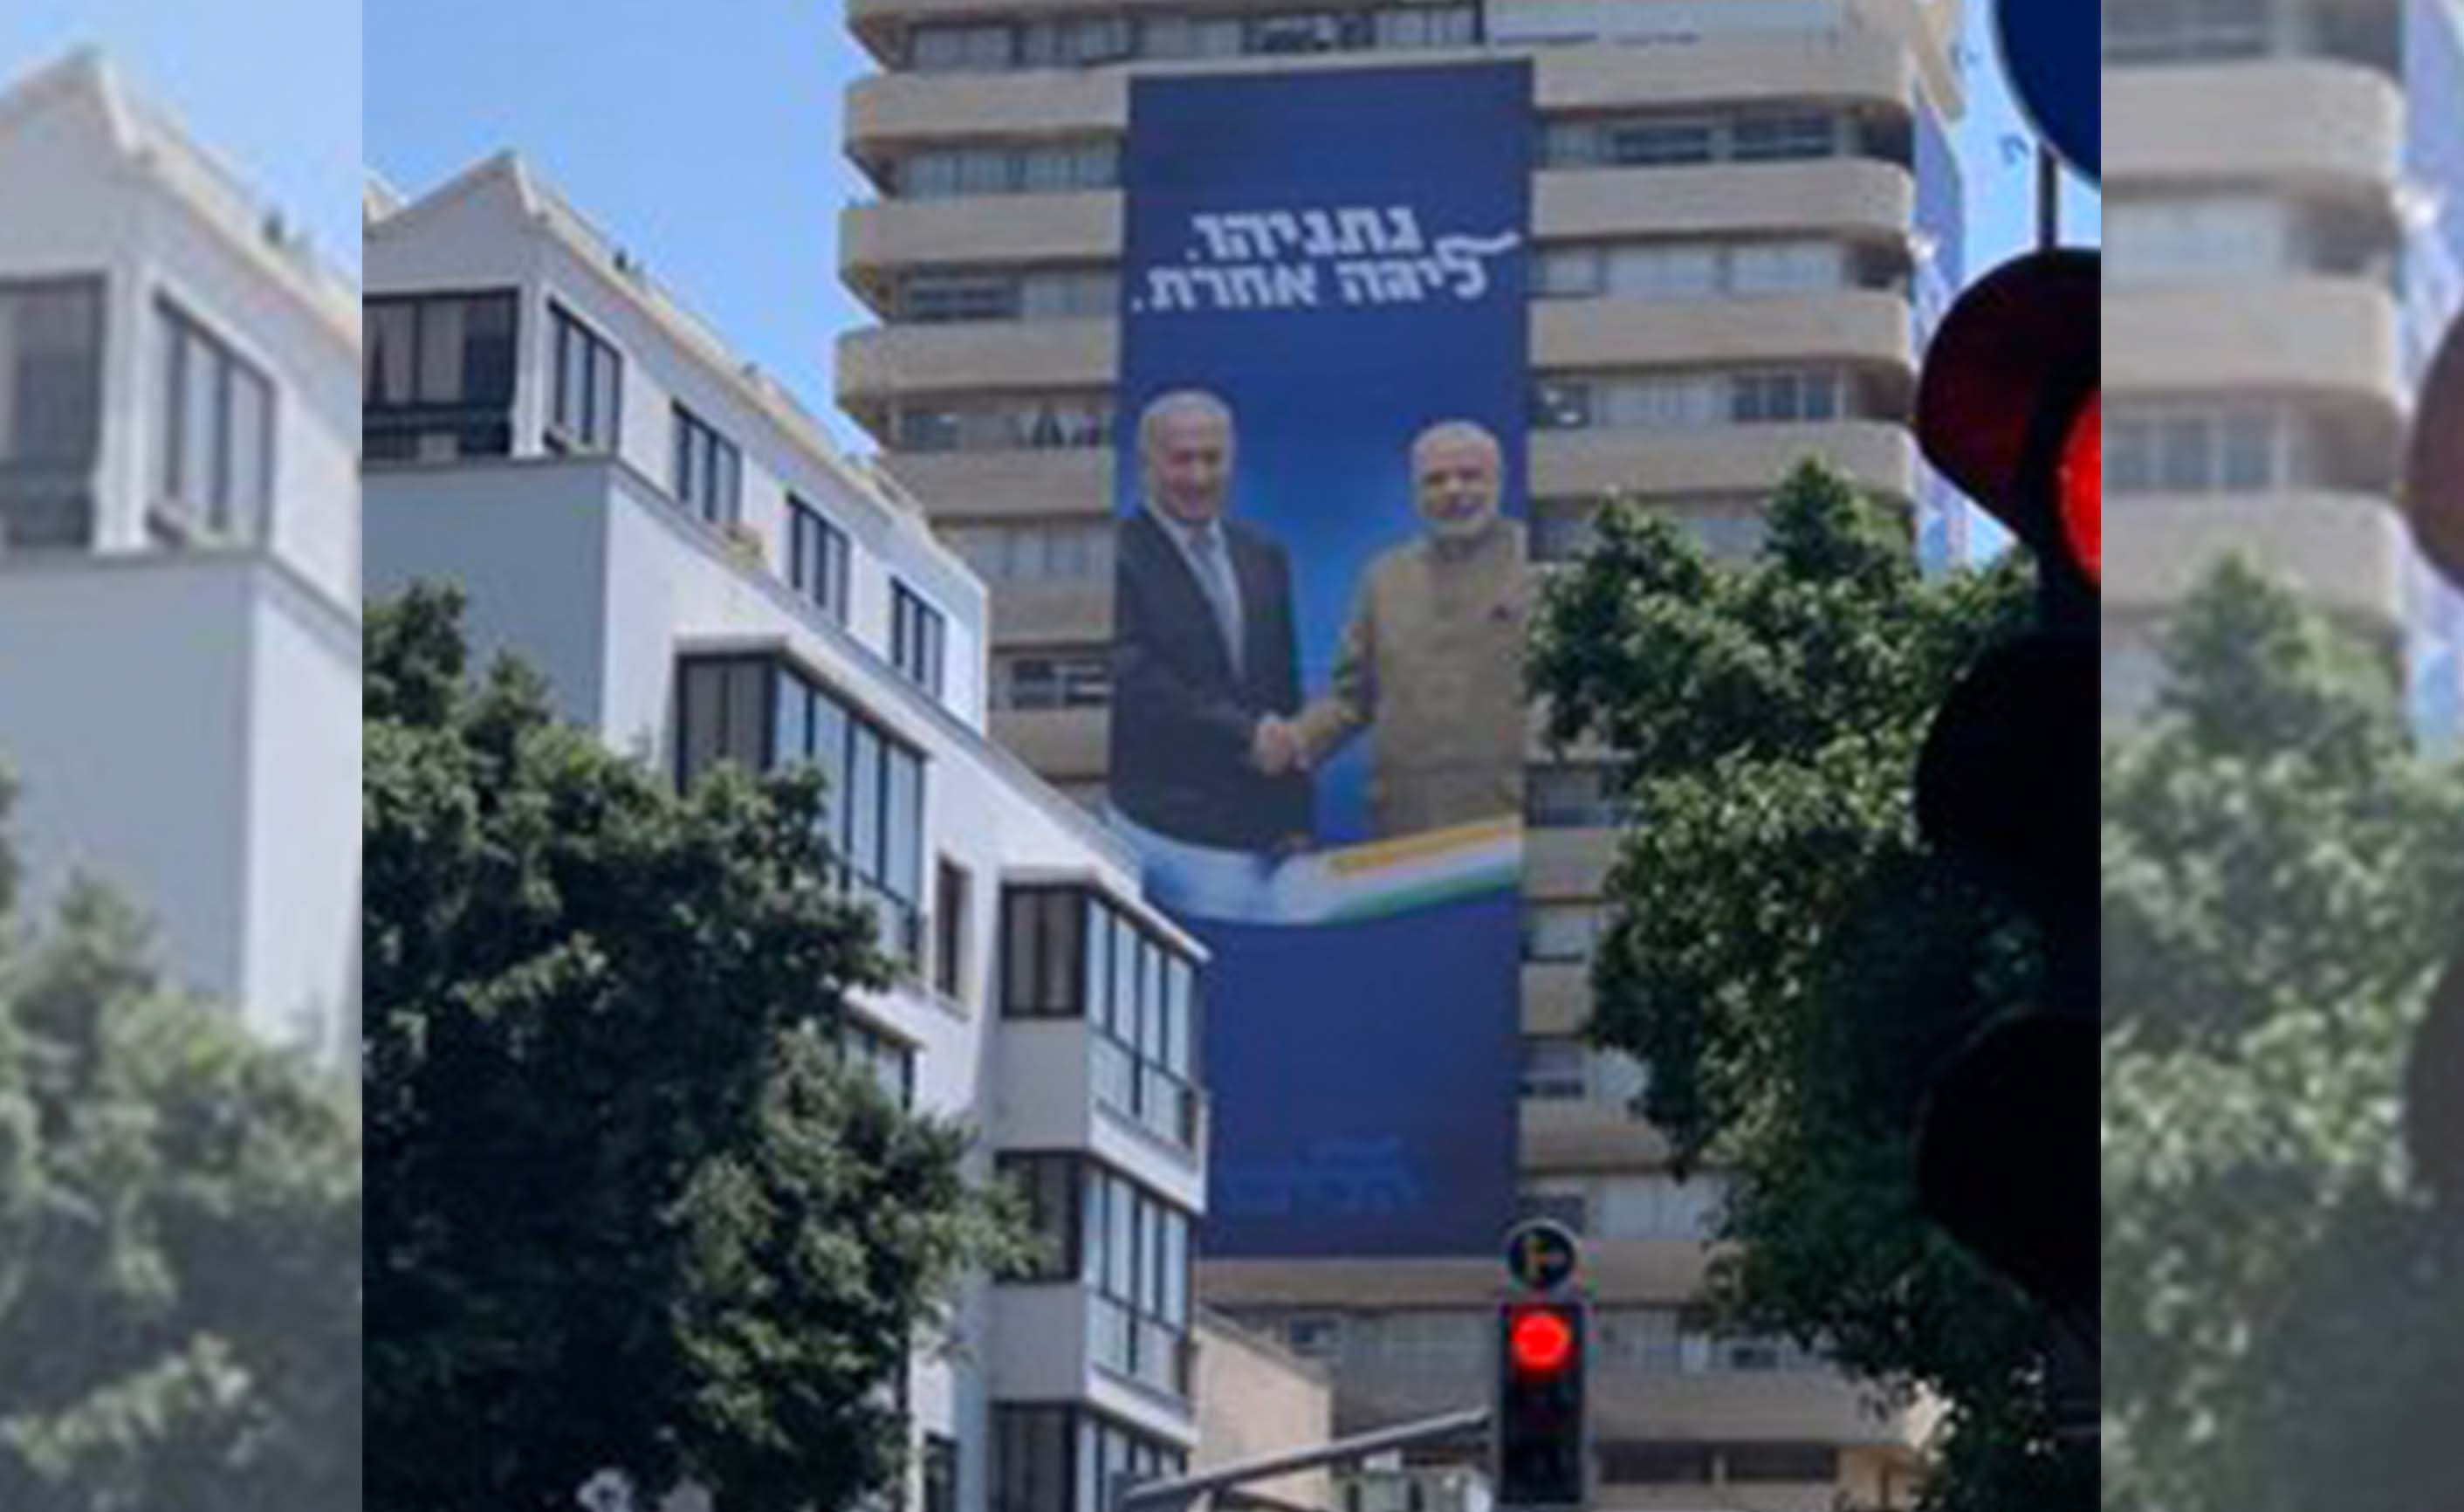 PM Modi, feature, Israel, Prime Minister, Benjamin Netanyahu, election, campaign, banner, newsmobile, Mobile, News, India